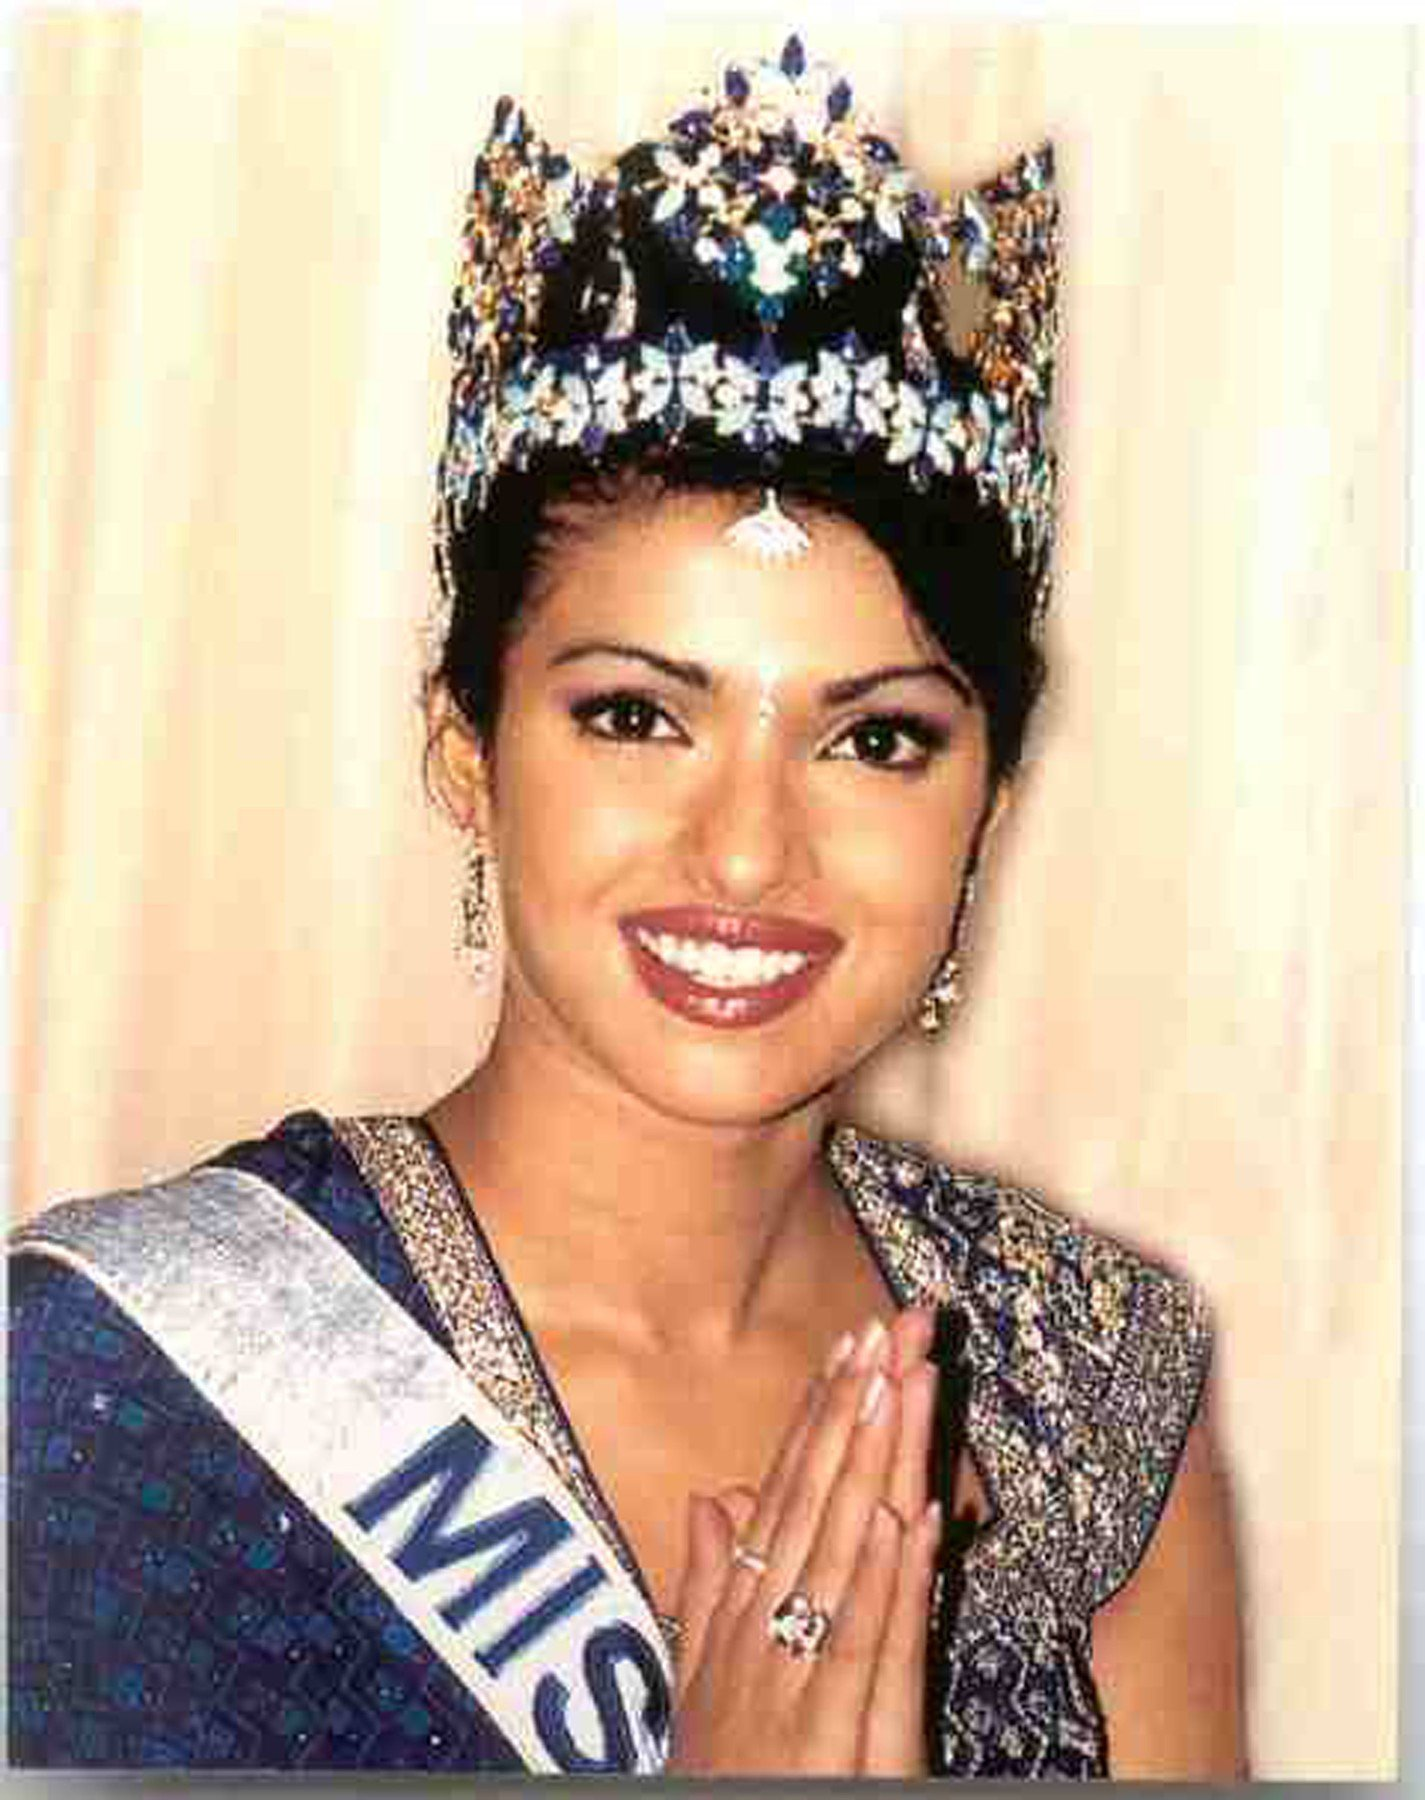 (PICTURED:Miss World 2000 - Priyanka Chopra - INDIA ) - Incredible pictures from more than 60 years of the Miss World competition show how much fashions have changed since the first show of stunners in 1951. The worlds most beautiful women have gathered in London again this year to vie for the crown of Miss World. But while contestants are often accused of being identikit models, these pictures show the difference between the first winners with their demure post-war glamour and the glitzy gowns of contestants in more recent years. ., Image: 211742463, License: Rights-managed, Restrictions: , Model Release: no, Credit line: Profimedia, Caters News